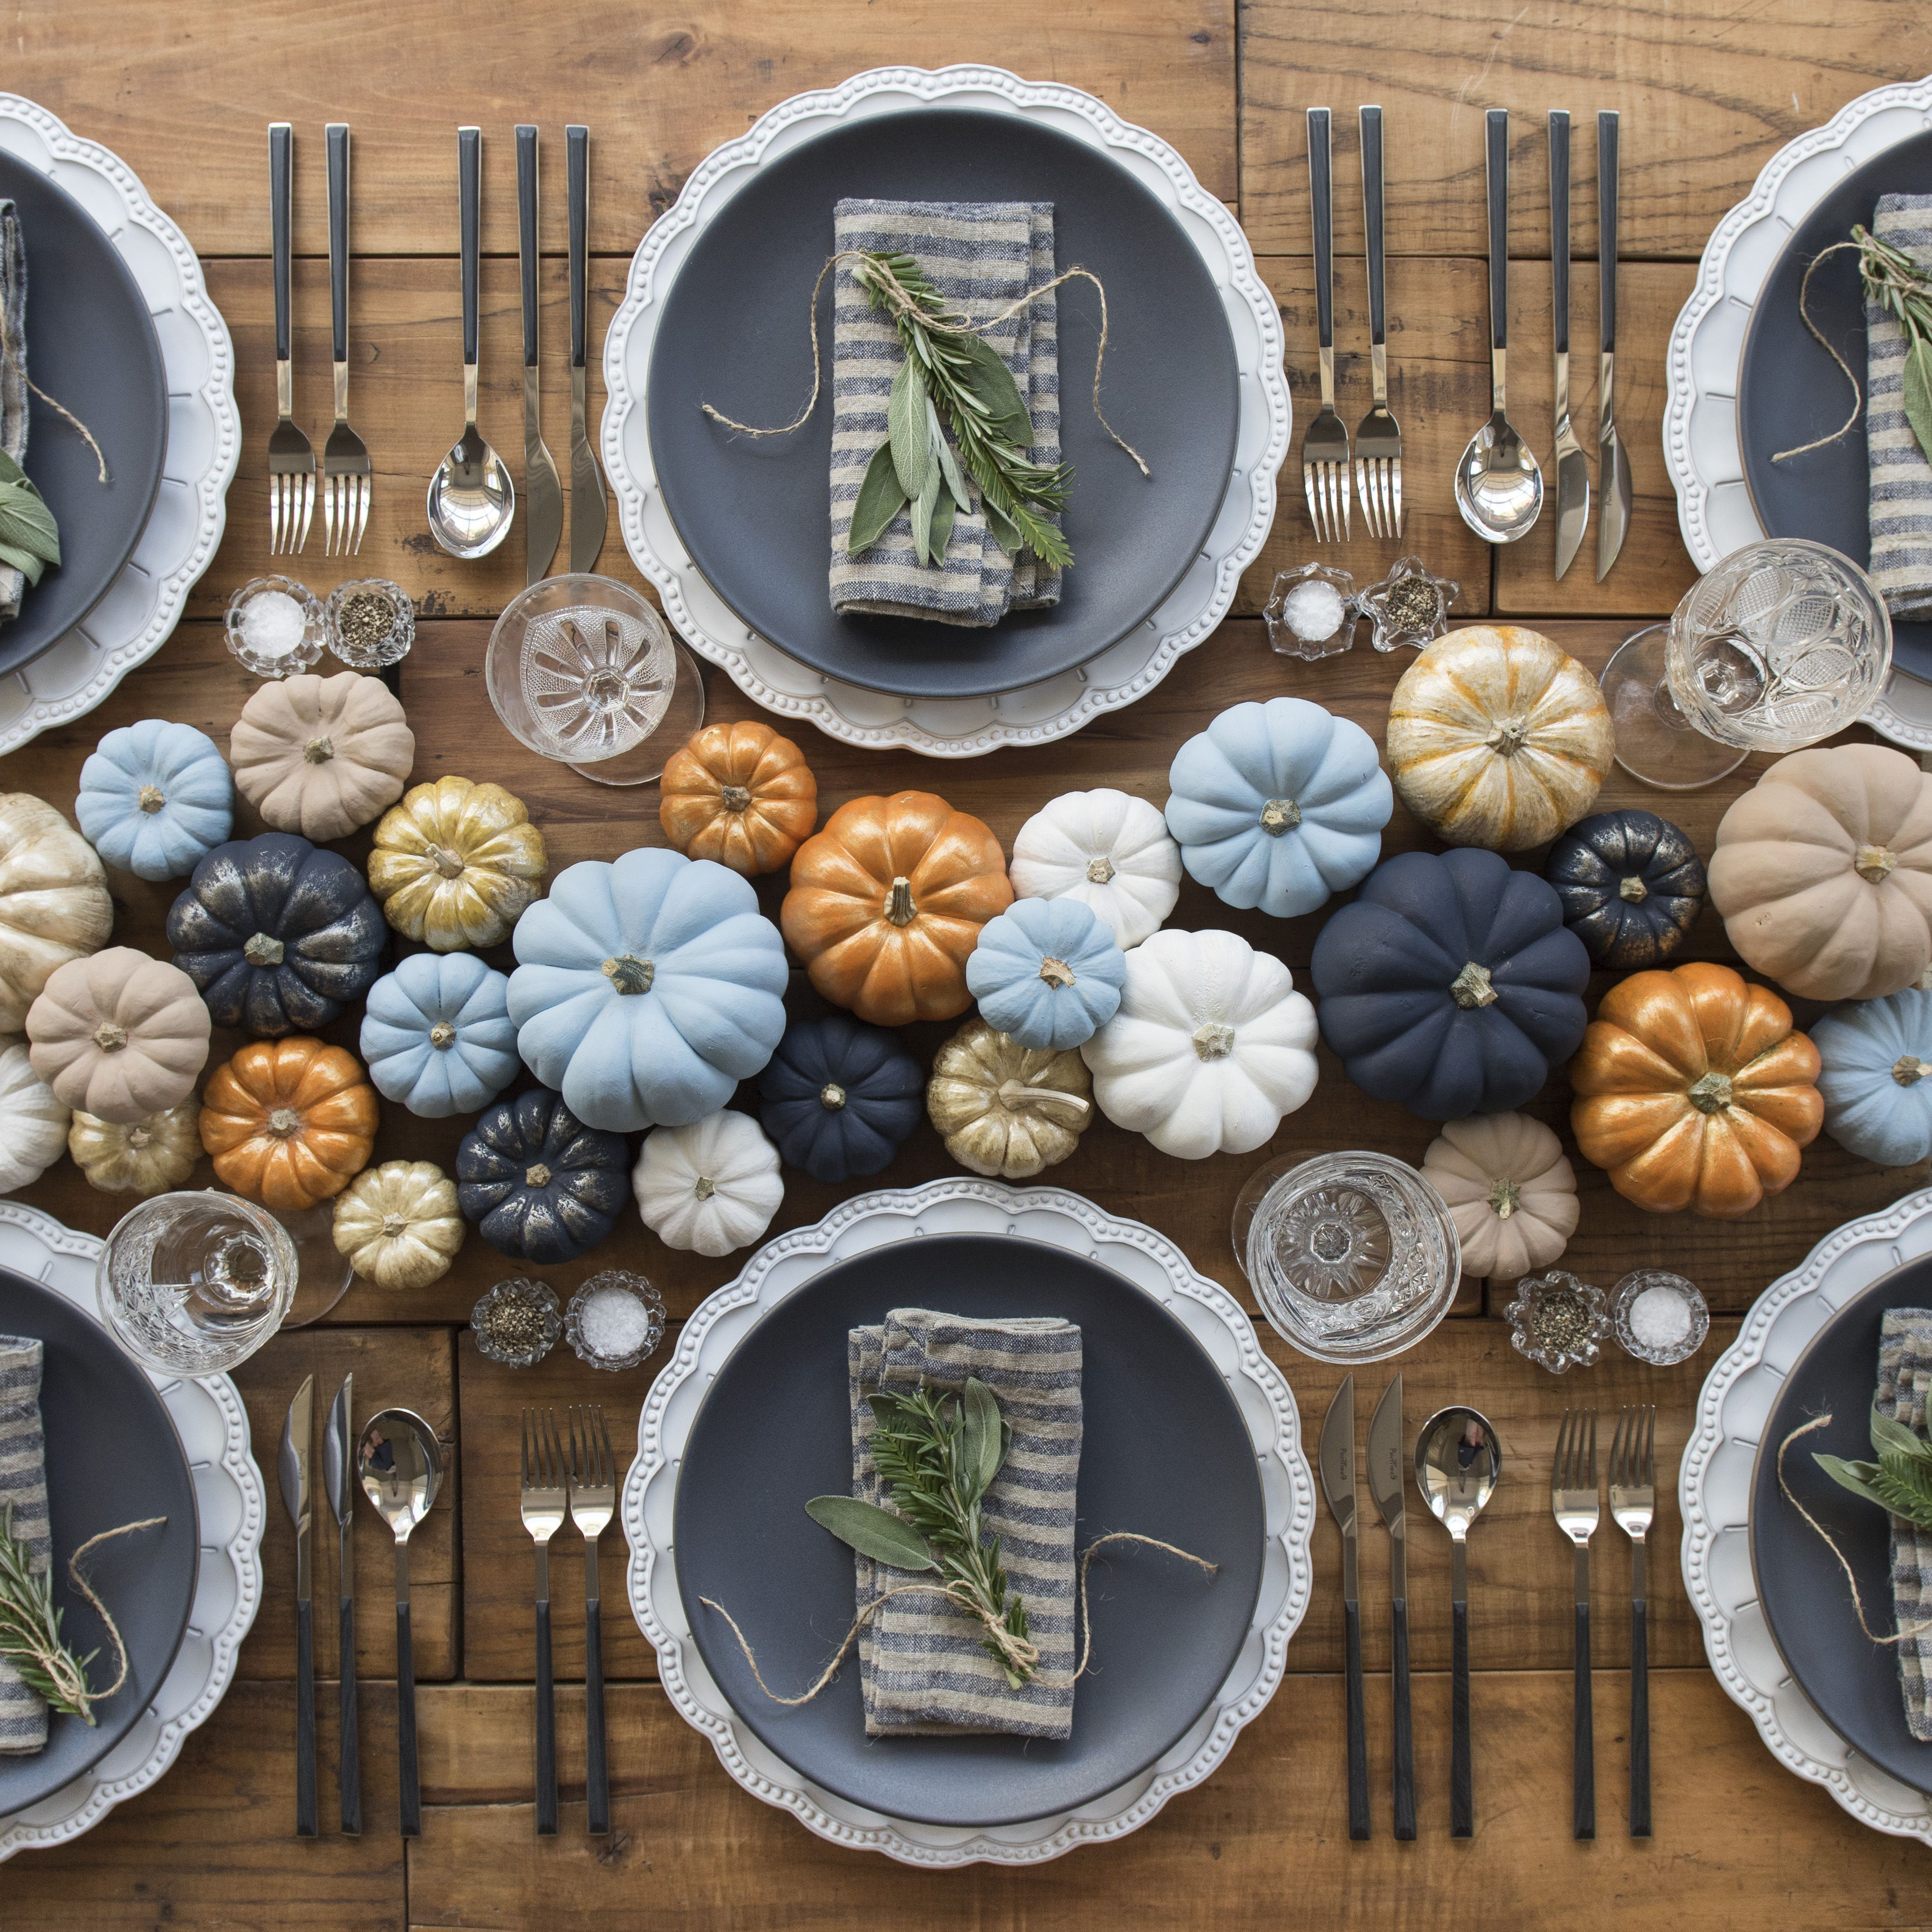 Wedding Decor Ideas Pinterest: 12 Ways To Decorate Your Fall Wedding With Pumpkins